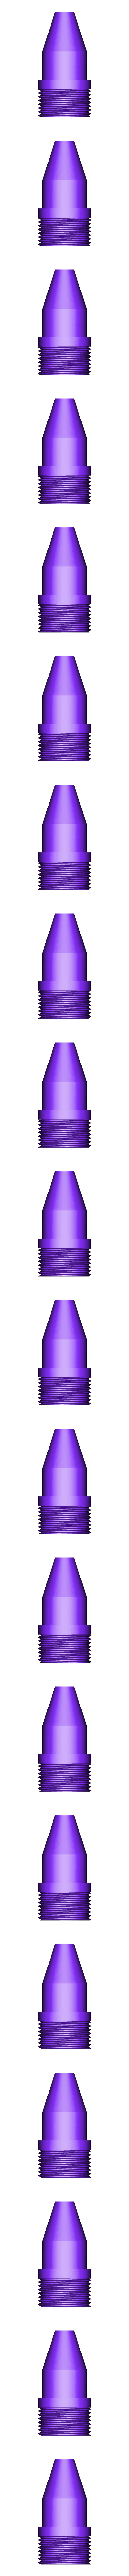 nozzle.stl Download free STL file Vase, squeeze bottle thingie and nozzles • 3D printable model, Thomllama